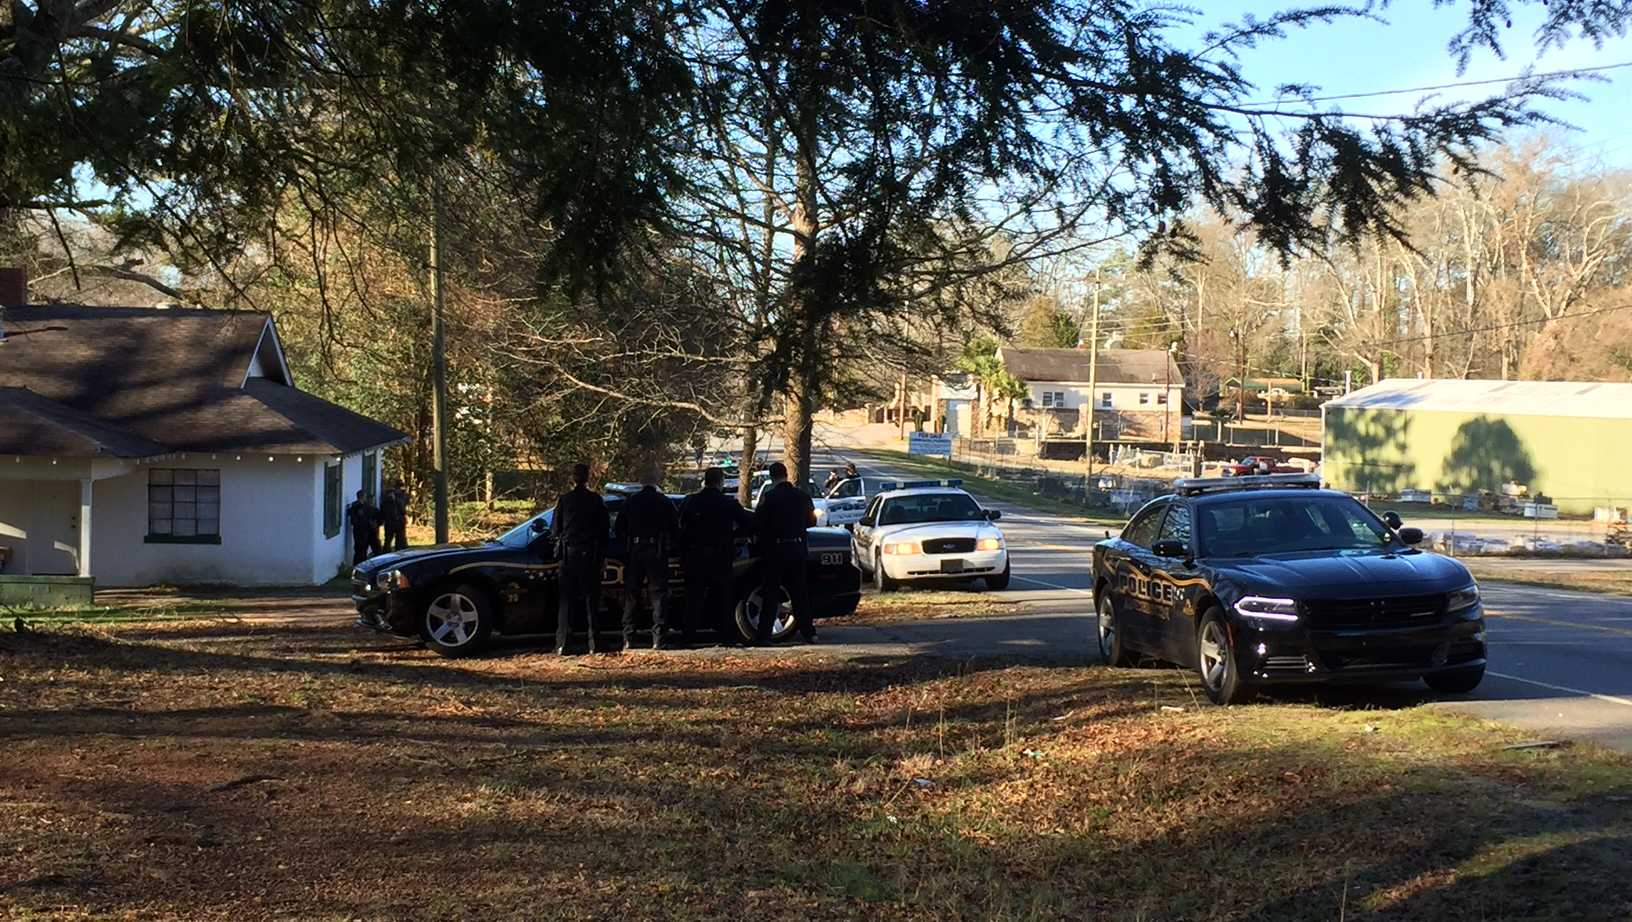 SWAT at Anderson home